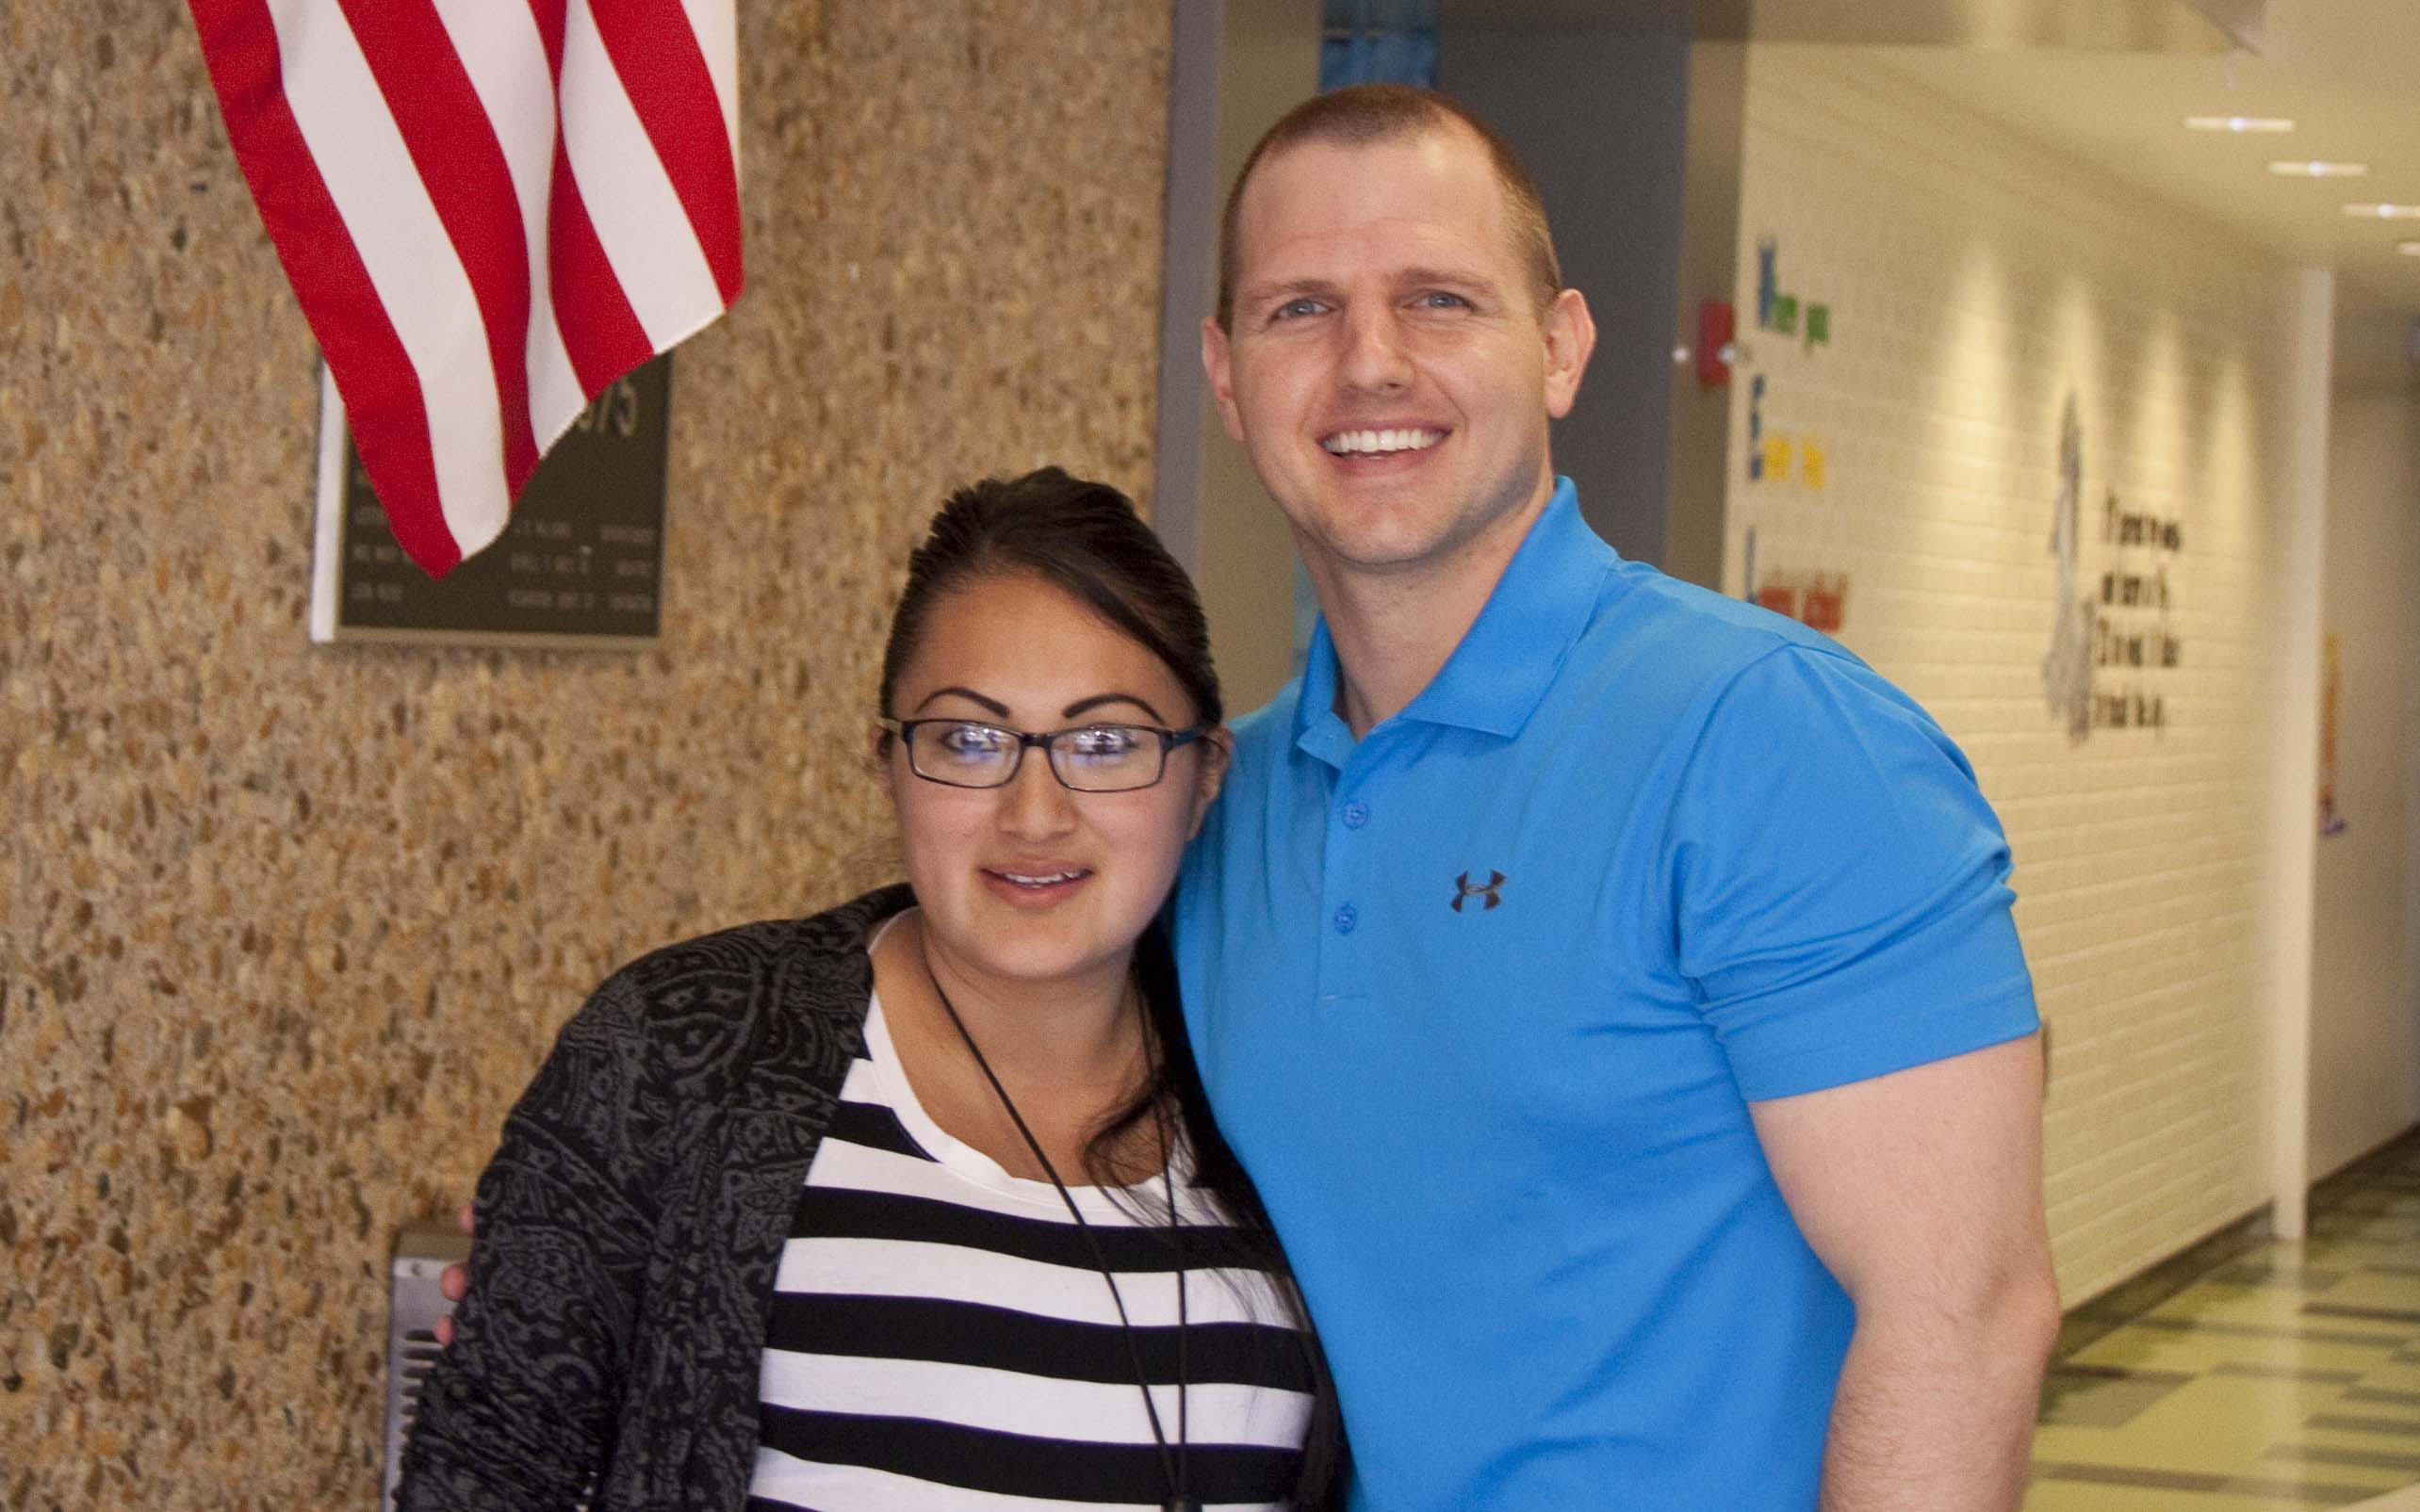 Theresa Villeda, instructional aide, stands with Jonathan Crossley in the halls of Baseline.